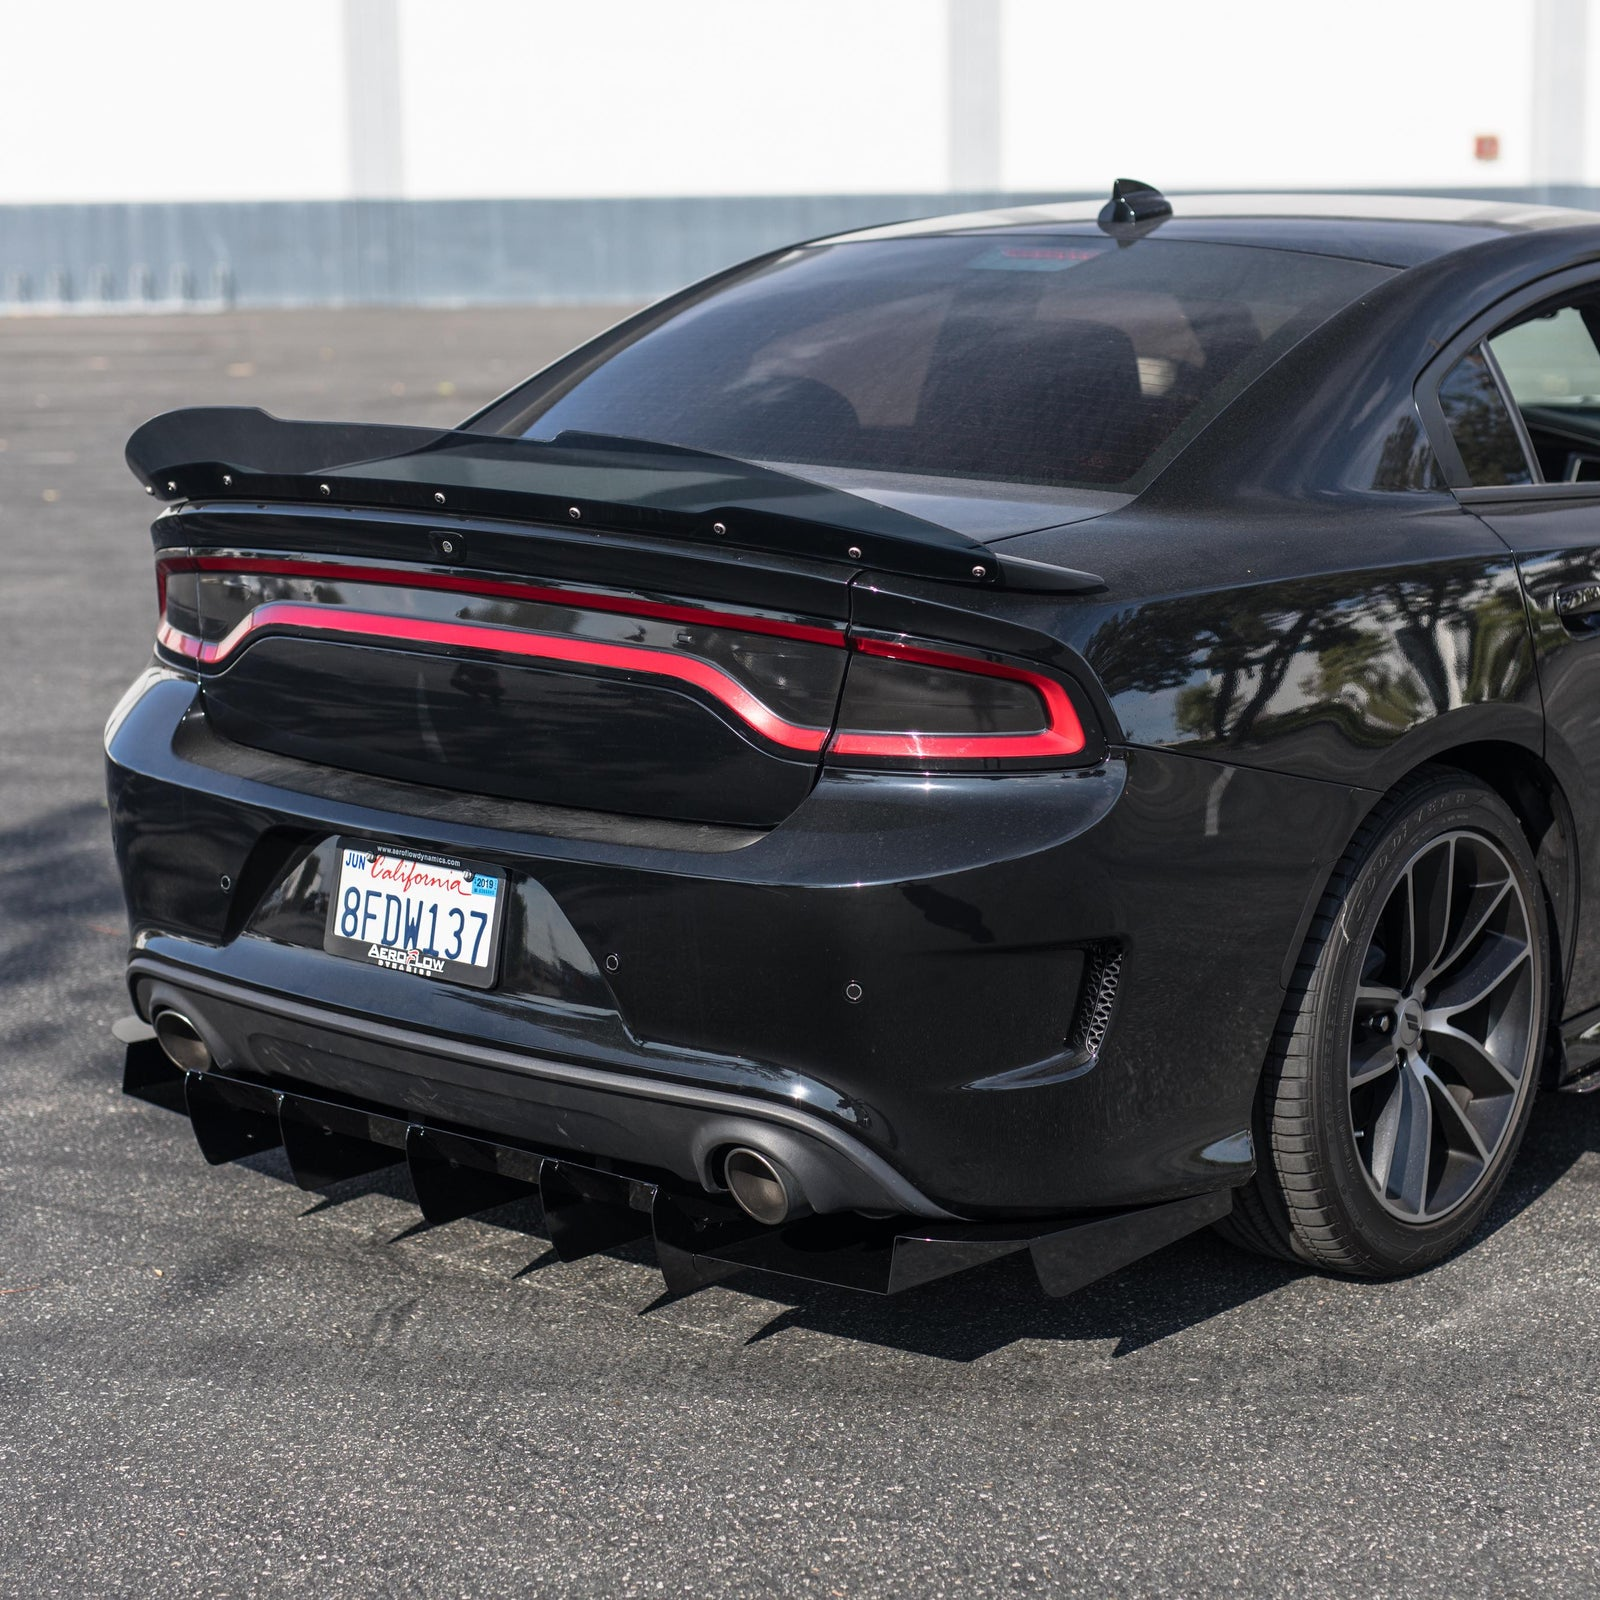 2015-2019 Dodge Charger Scatpack/ Hellcat/Daytona Rear